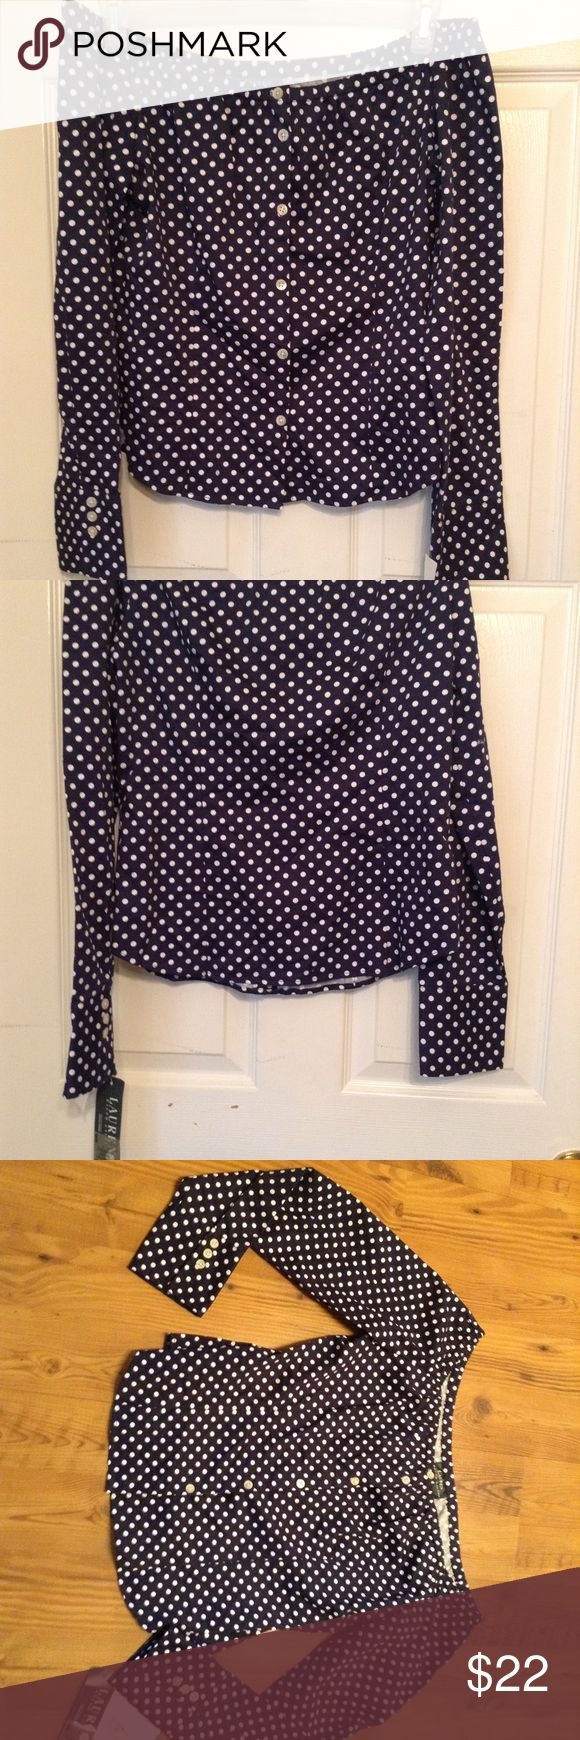 NWT Ralph Lauren Blue Size M  Polka Dot Blouse Top You are buying a NWT Ralph Lauren Blue Size M  Polka Dot Blouse Top  SIZE:M    CONDITION: no stains, rips or damage.  LOCATION: From a pet free and smoke free home!  SHIPPING: We ship all items within 1 business day of your payment clearing  (excludes weekend and holidays) Lauren Ralph Lauren Tops Blouses